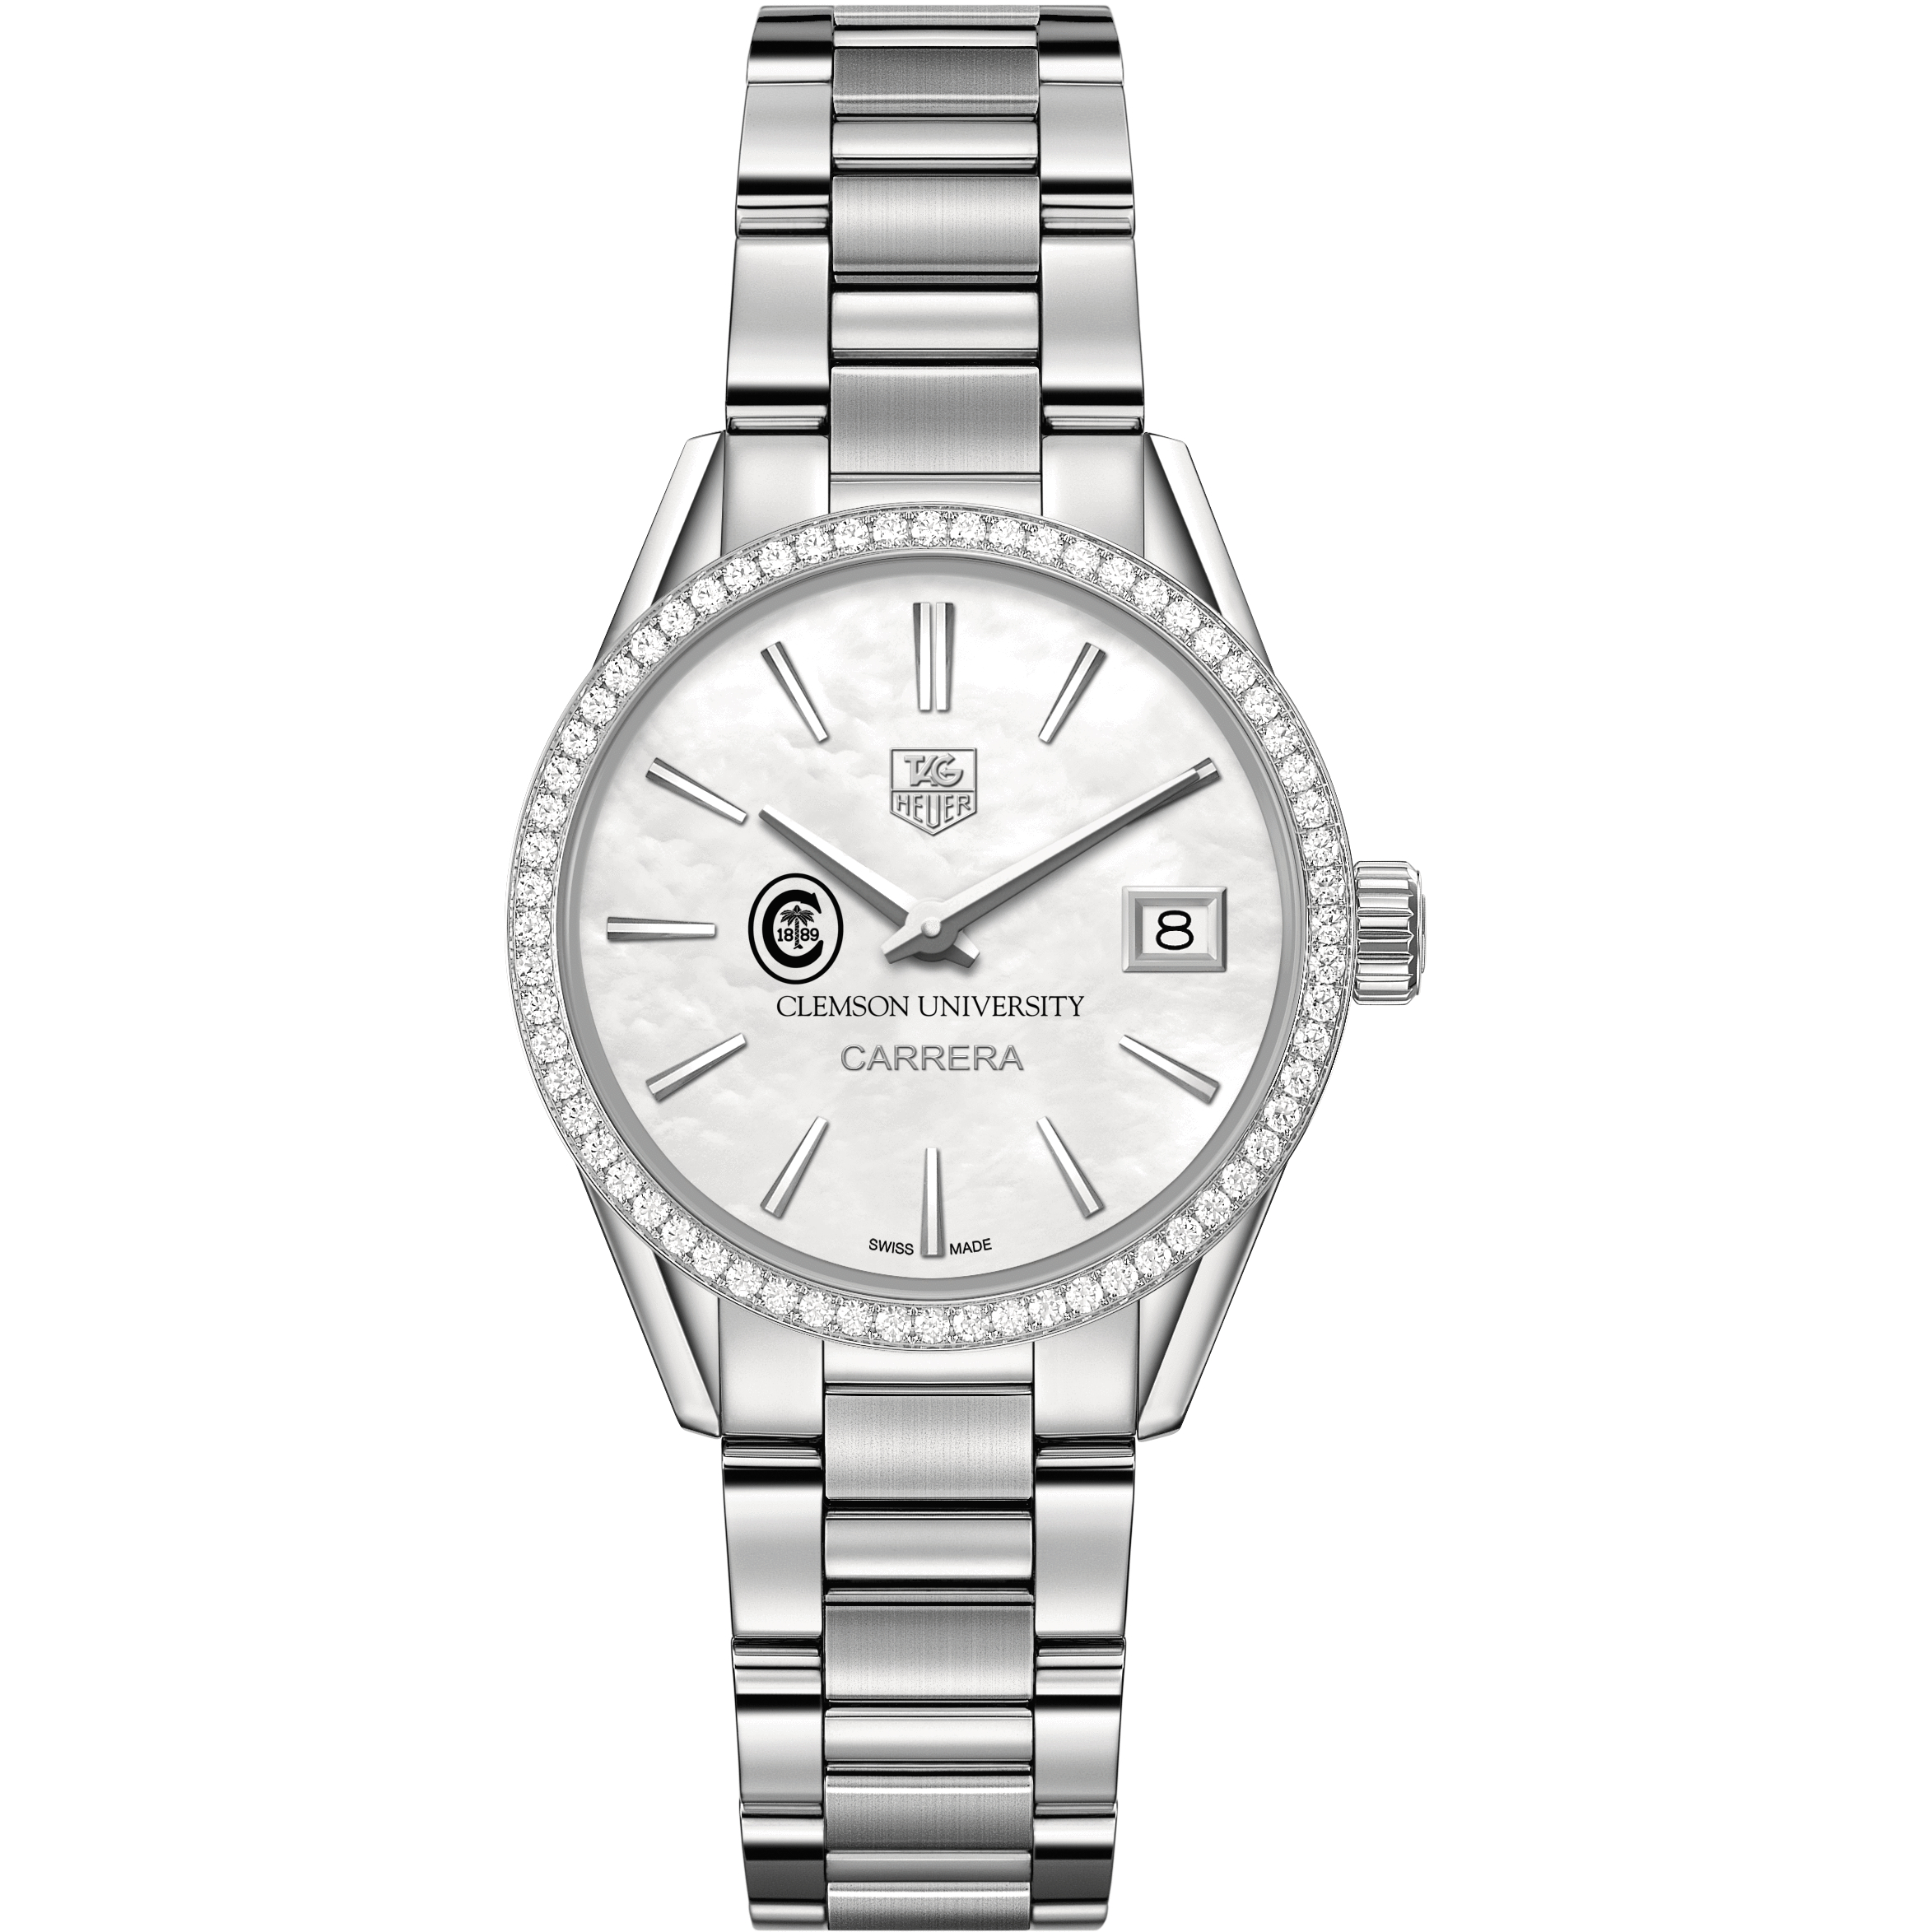 Clemson Women's TAG Heuer Steel Carrera with MOP Dial & Diamond Bezel - Image 2